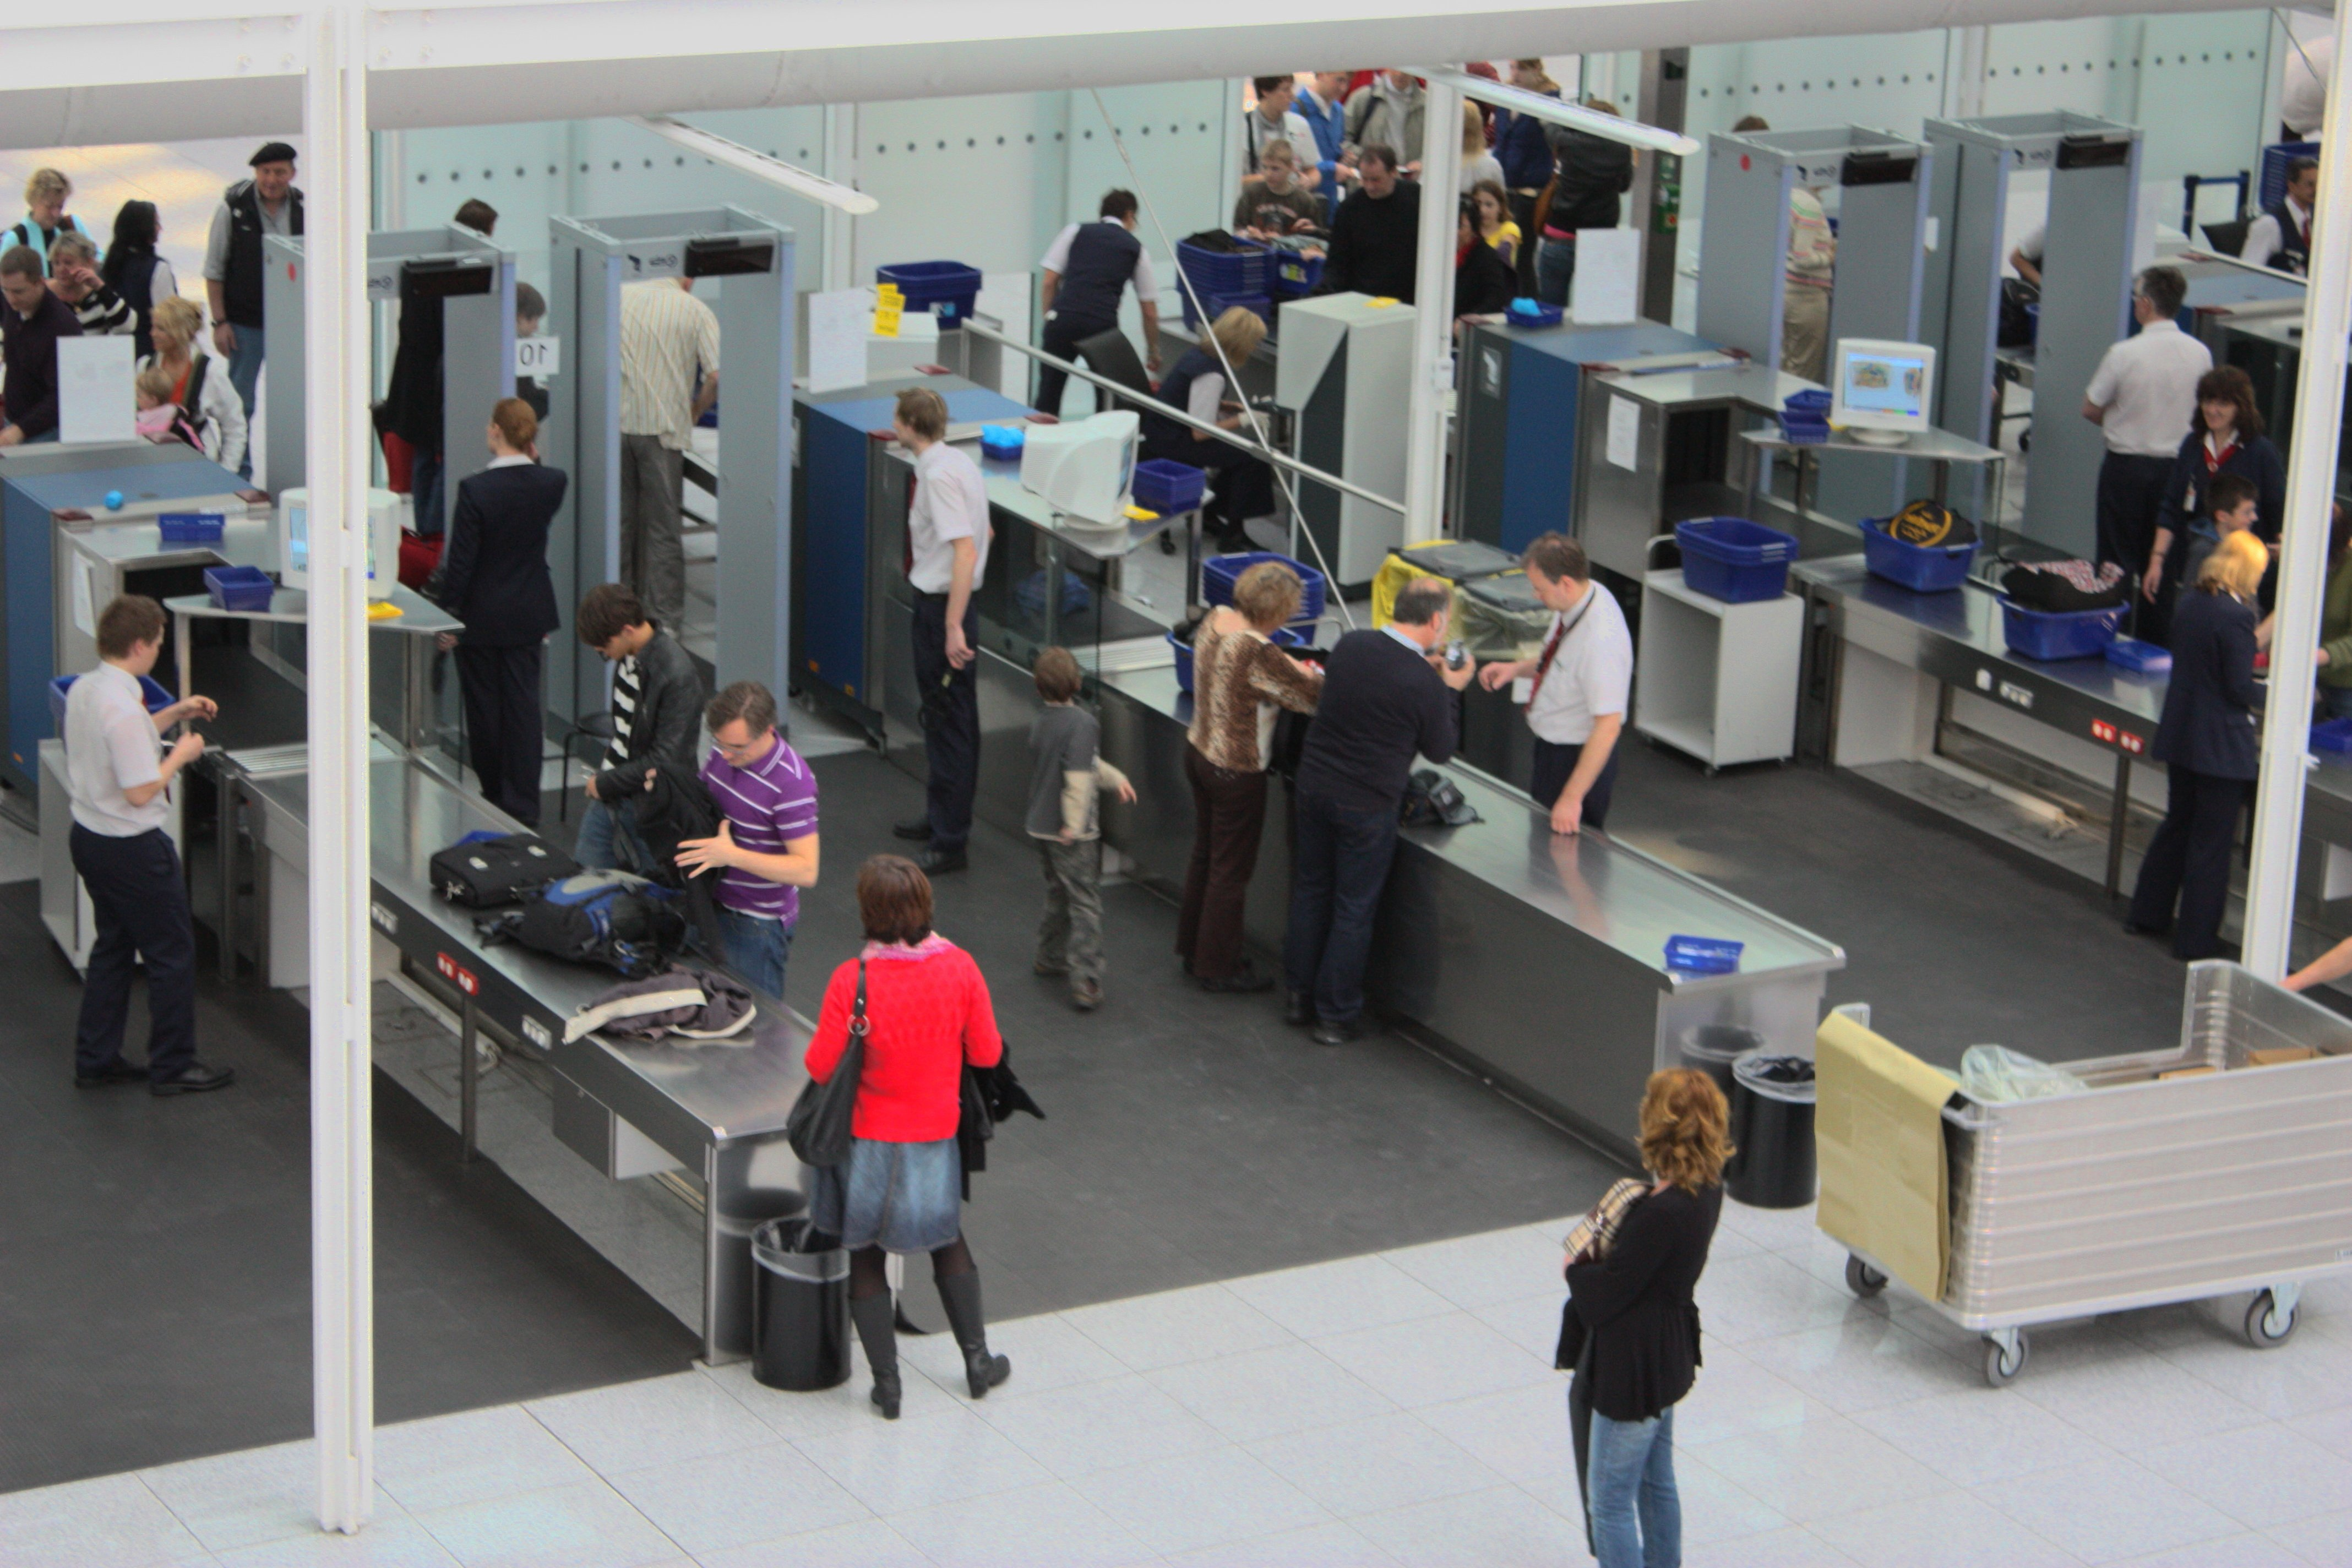 Security & ID Scanners - Houston  Boarding Gate Readers